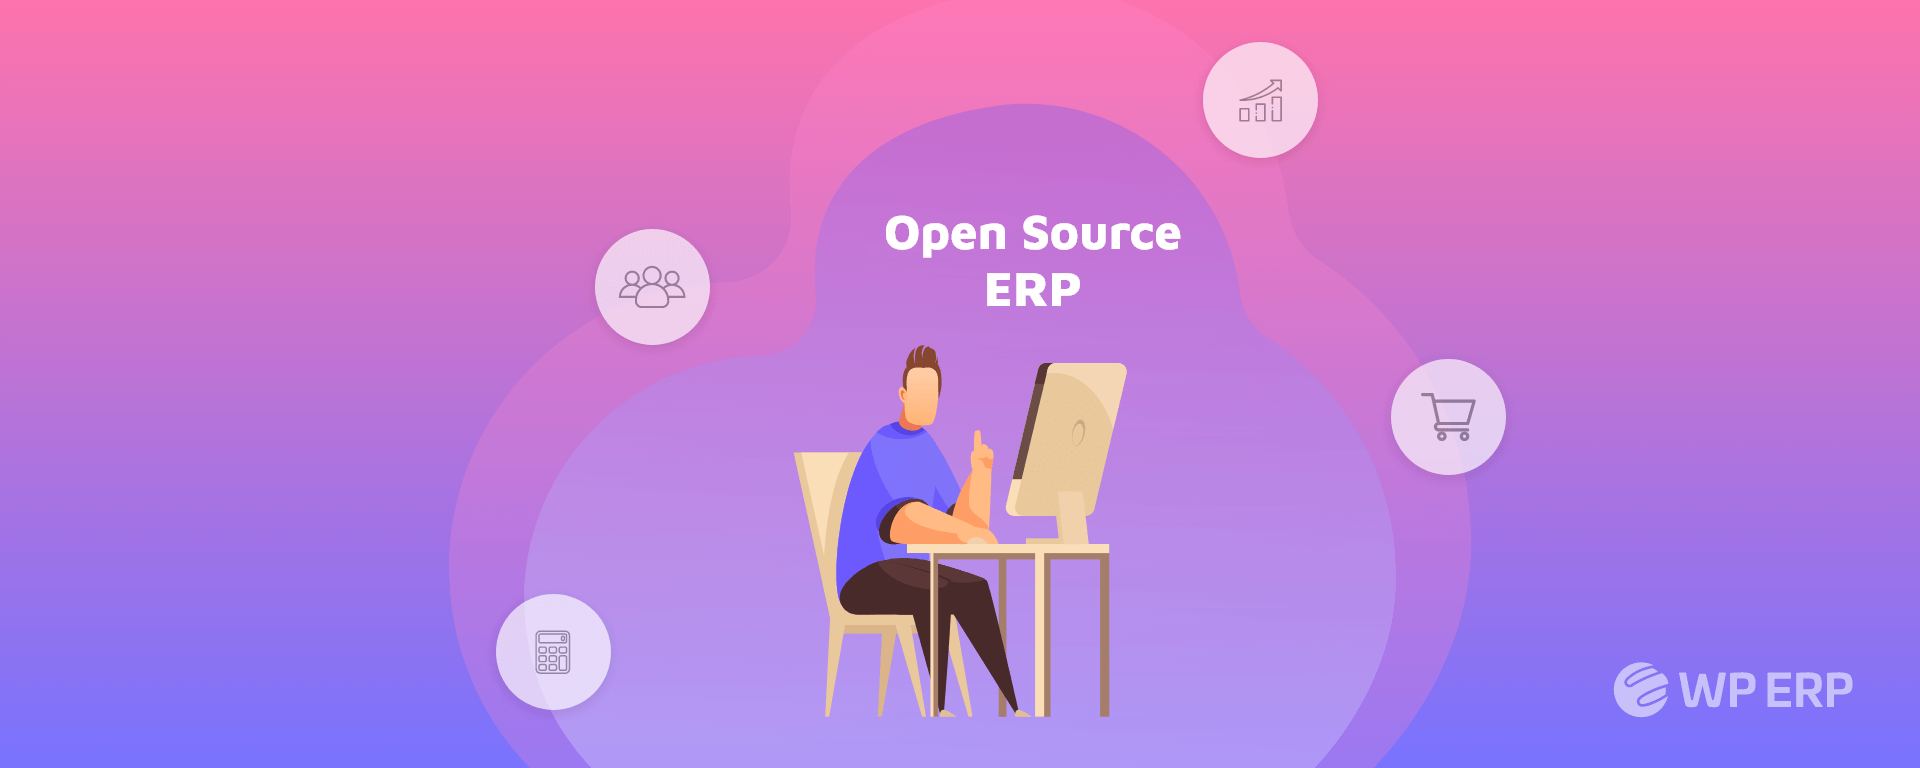 Open source ERP for SMES